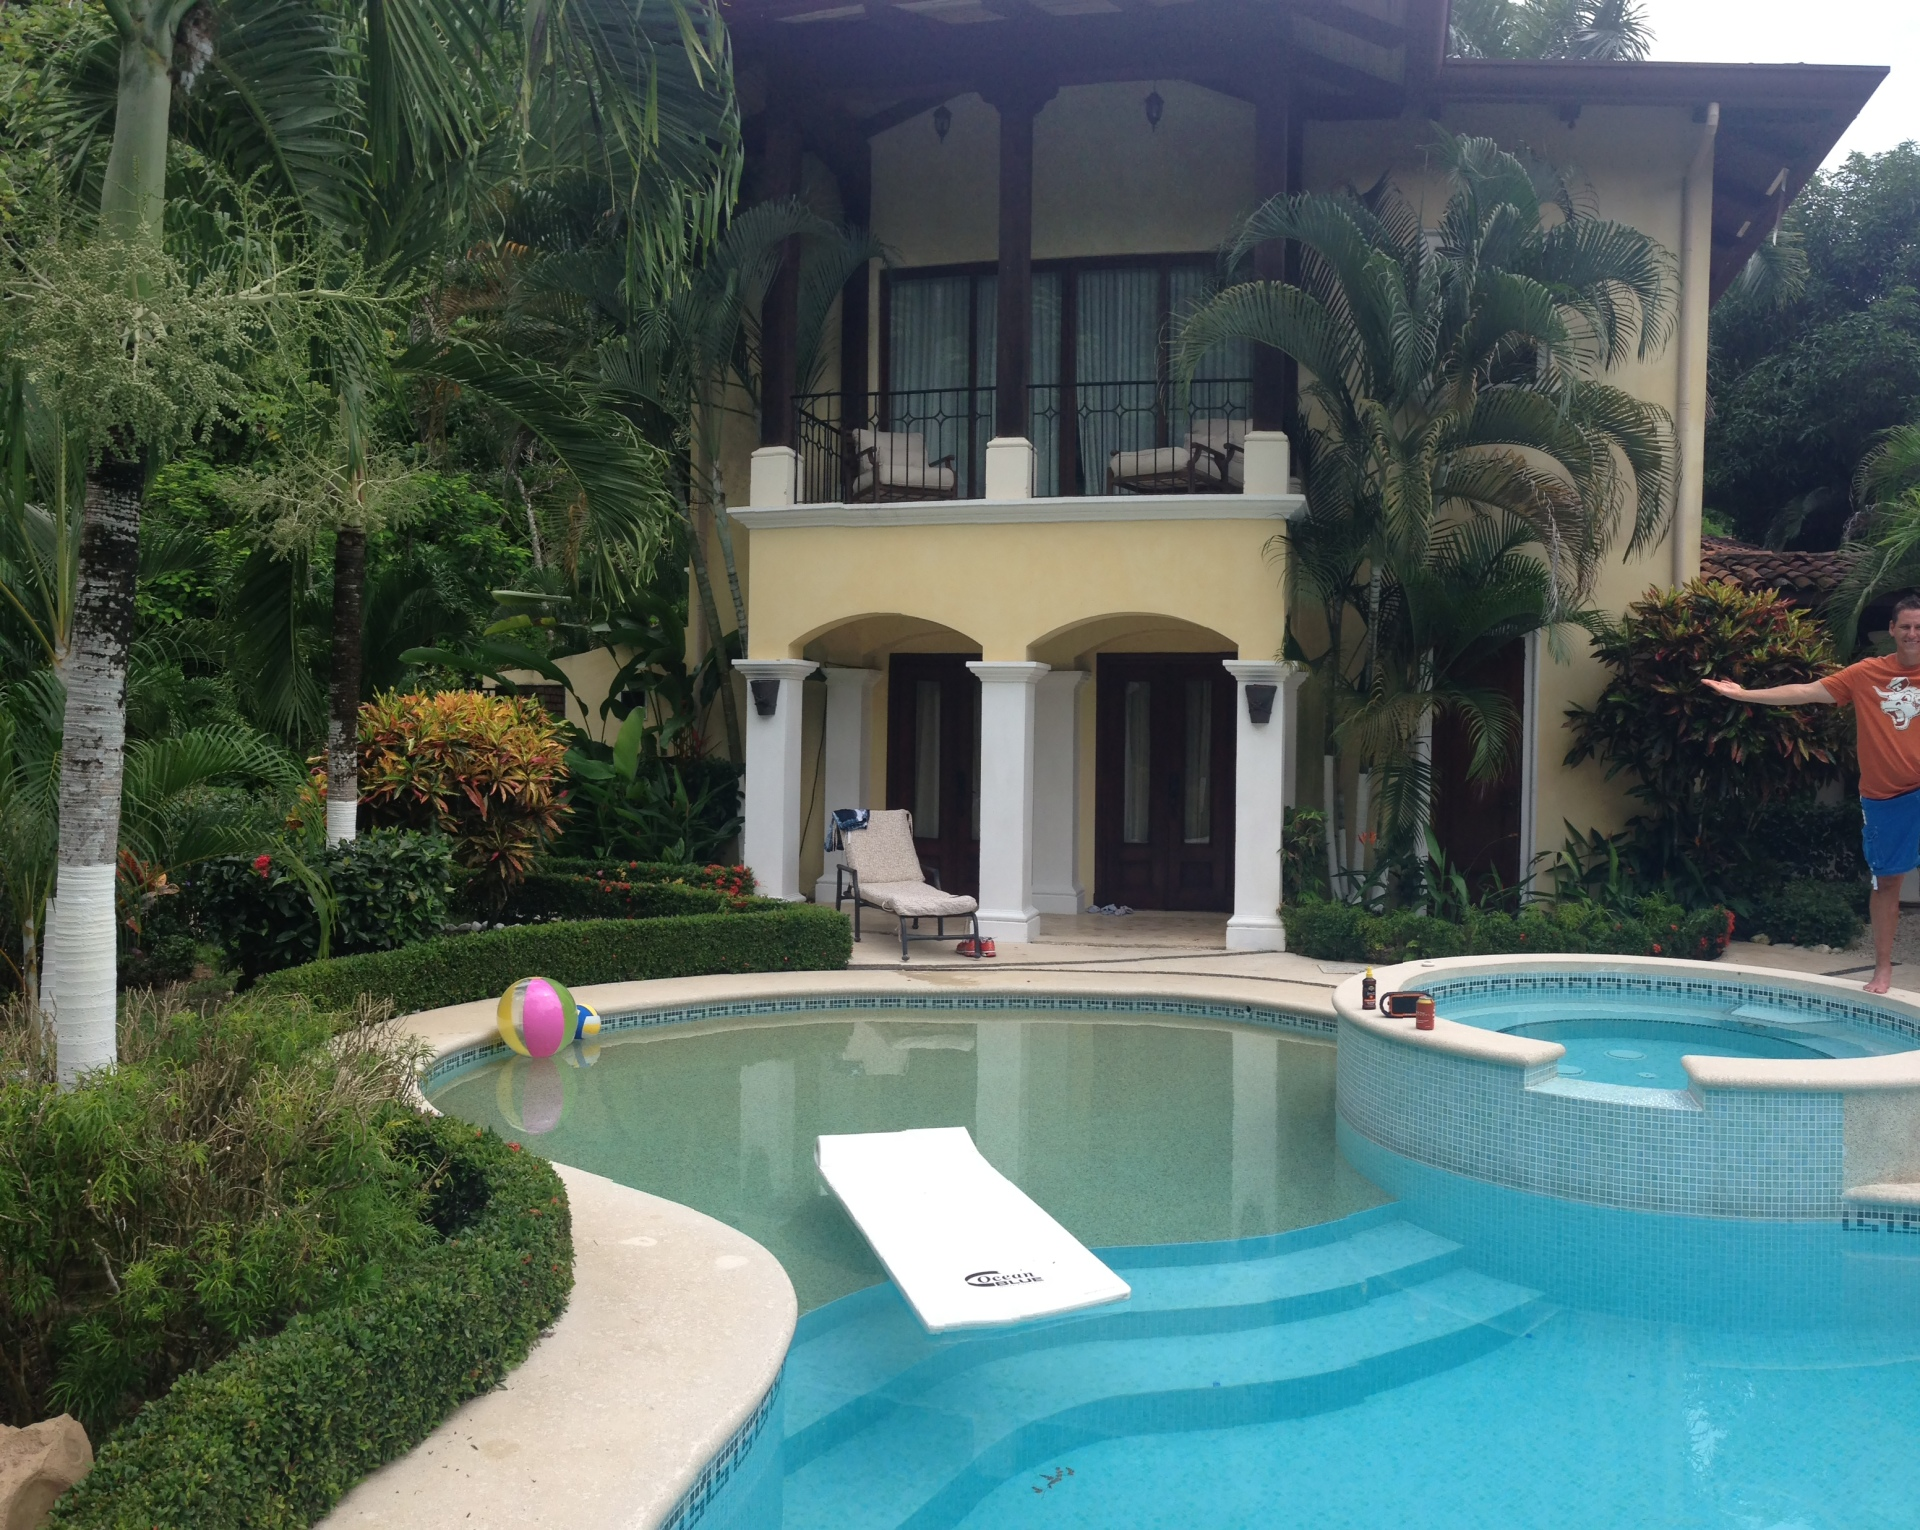 Our wing of the house had a private patio entrance to the pool.